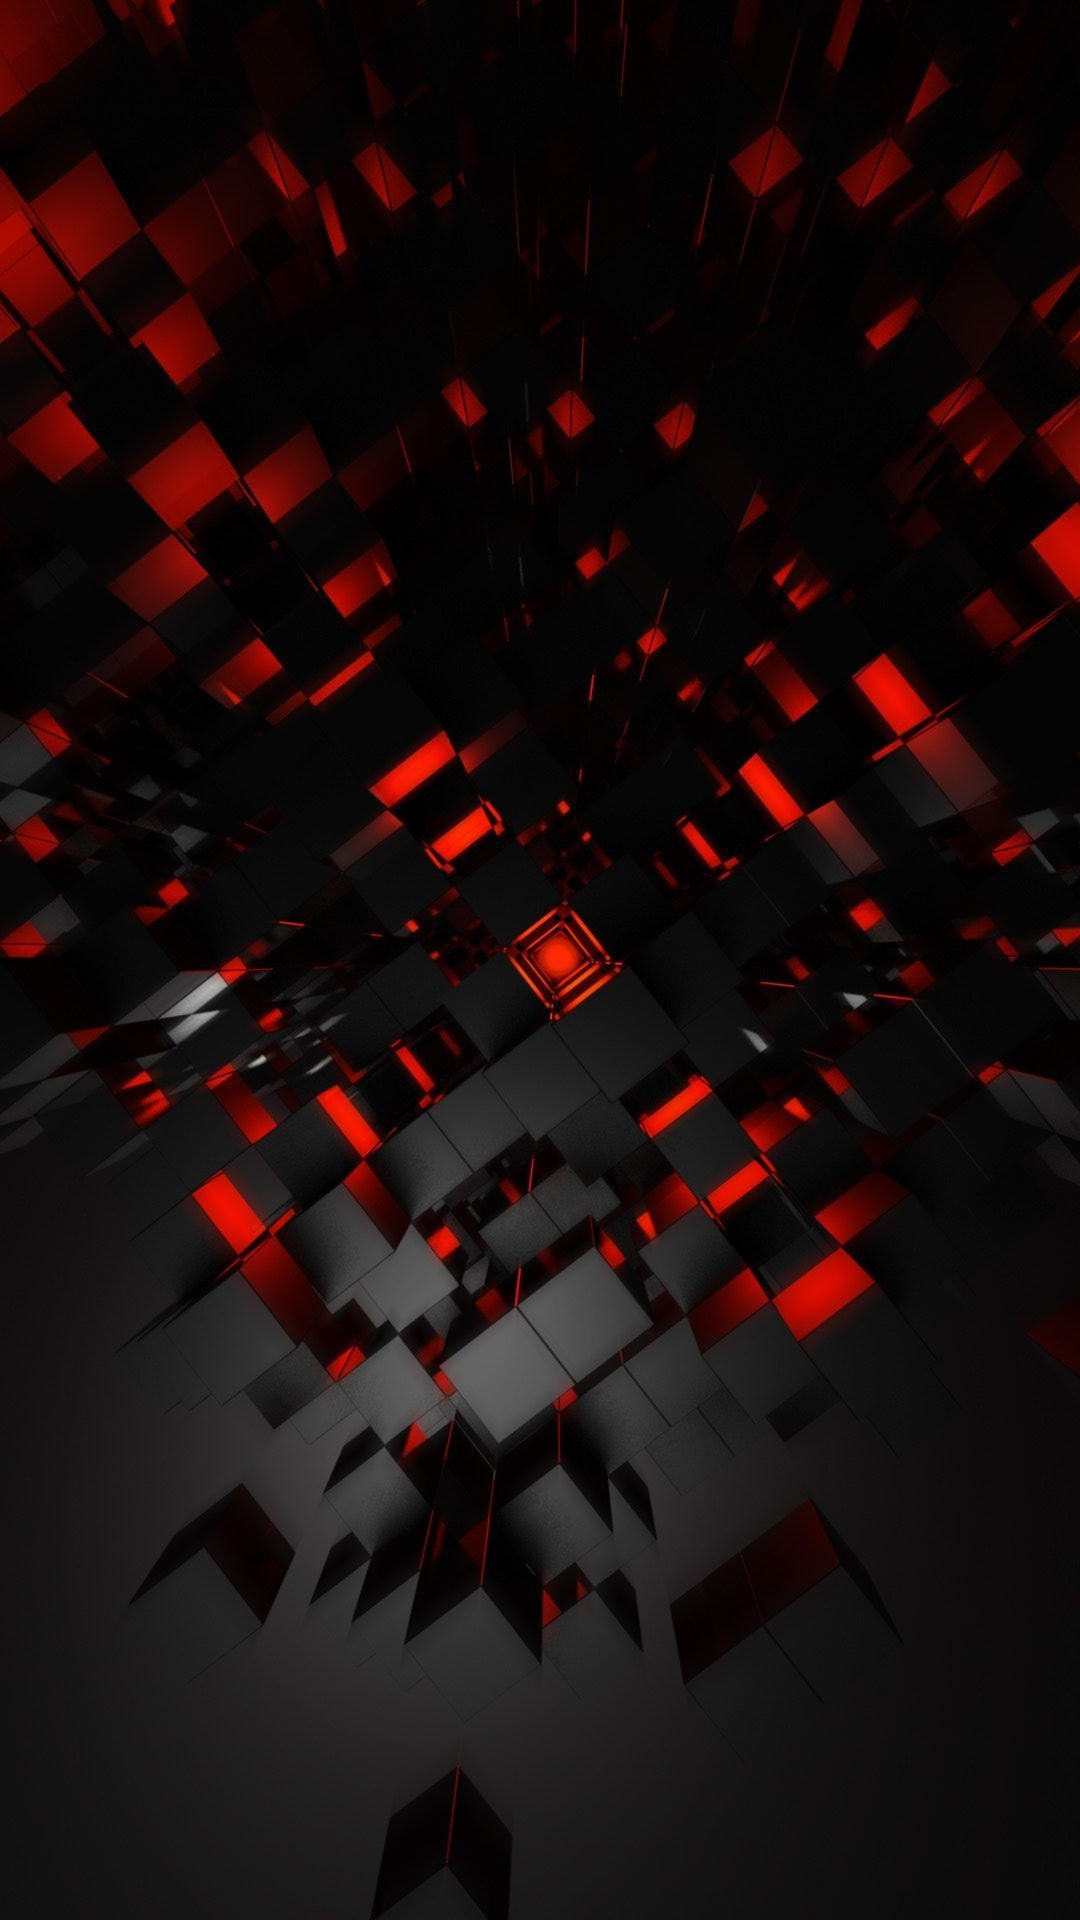 Black Hole Animated Wallpaper Black And Red Wallpaper Iphone 3d Iphone Wallpaper